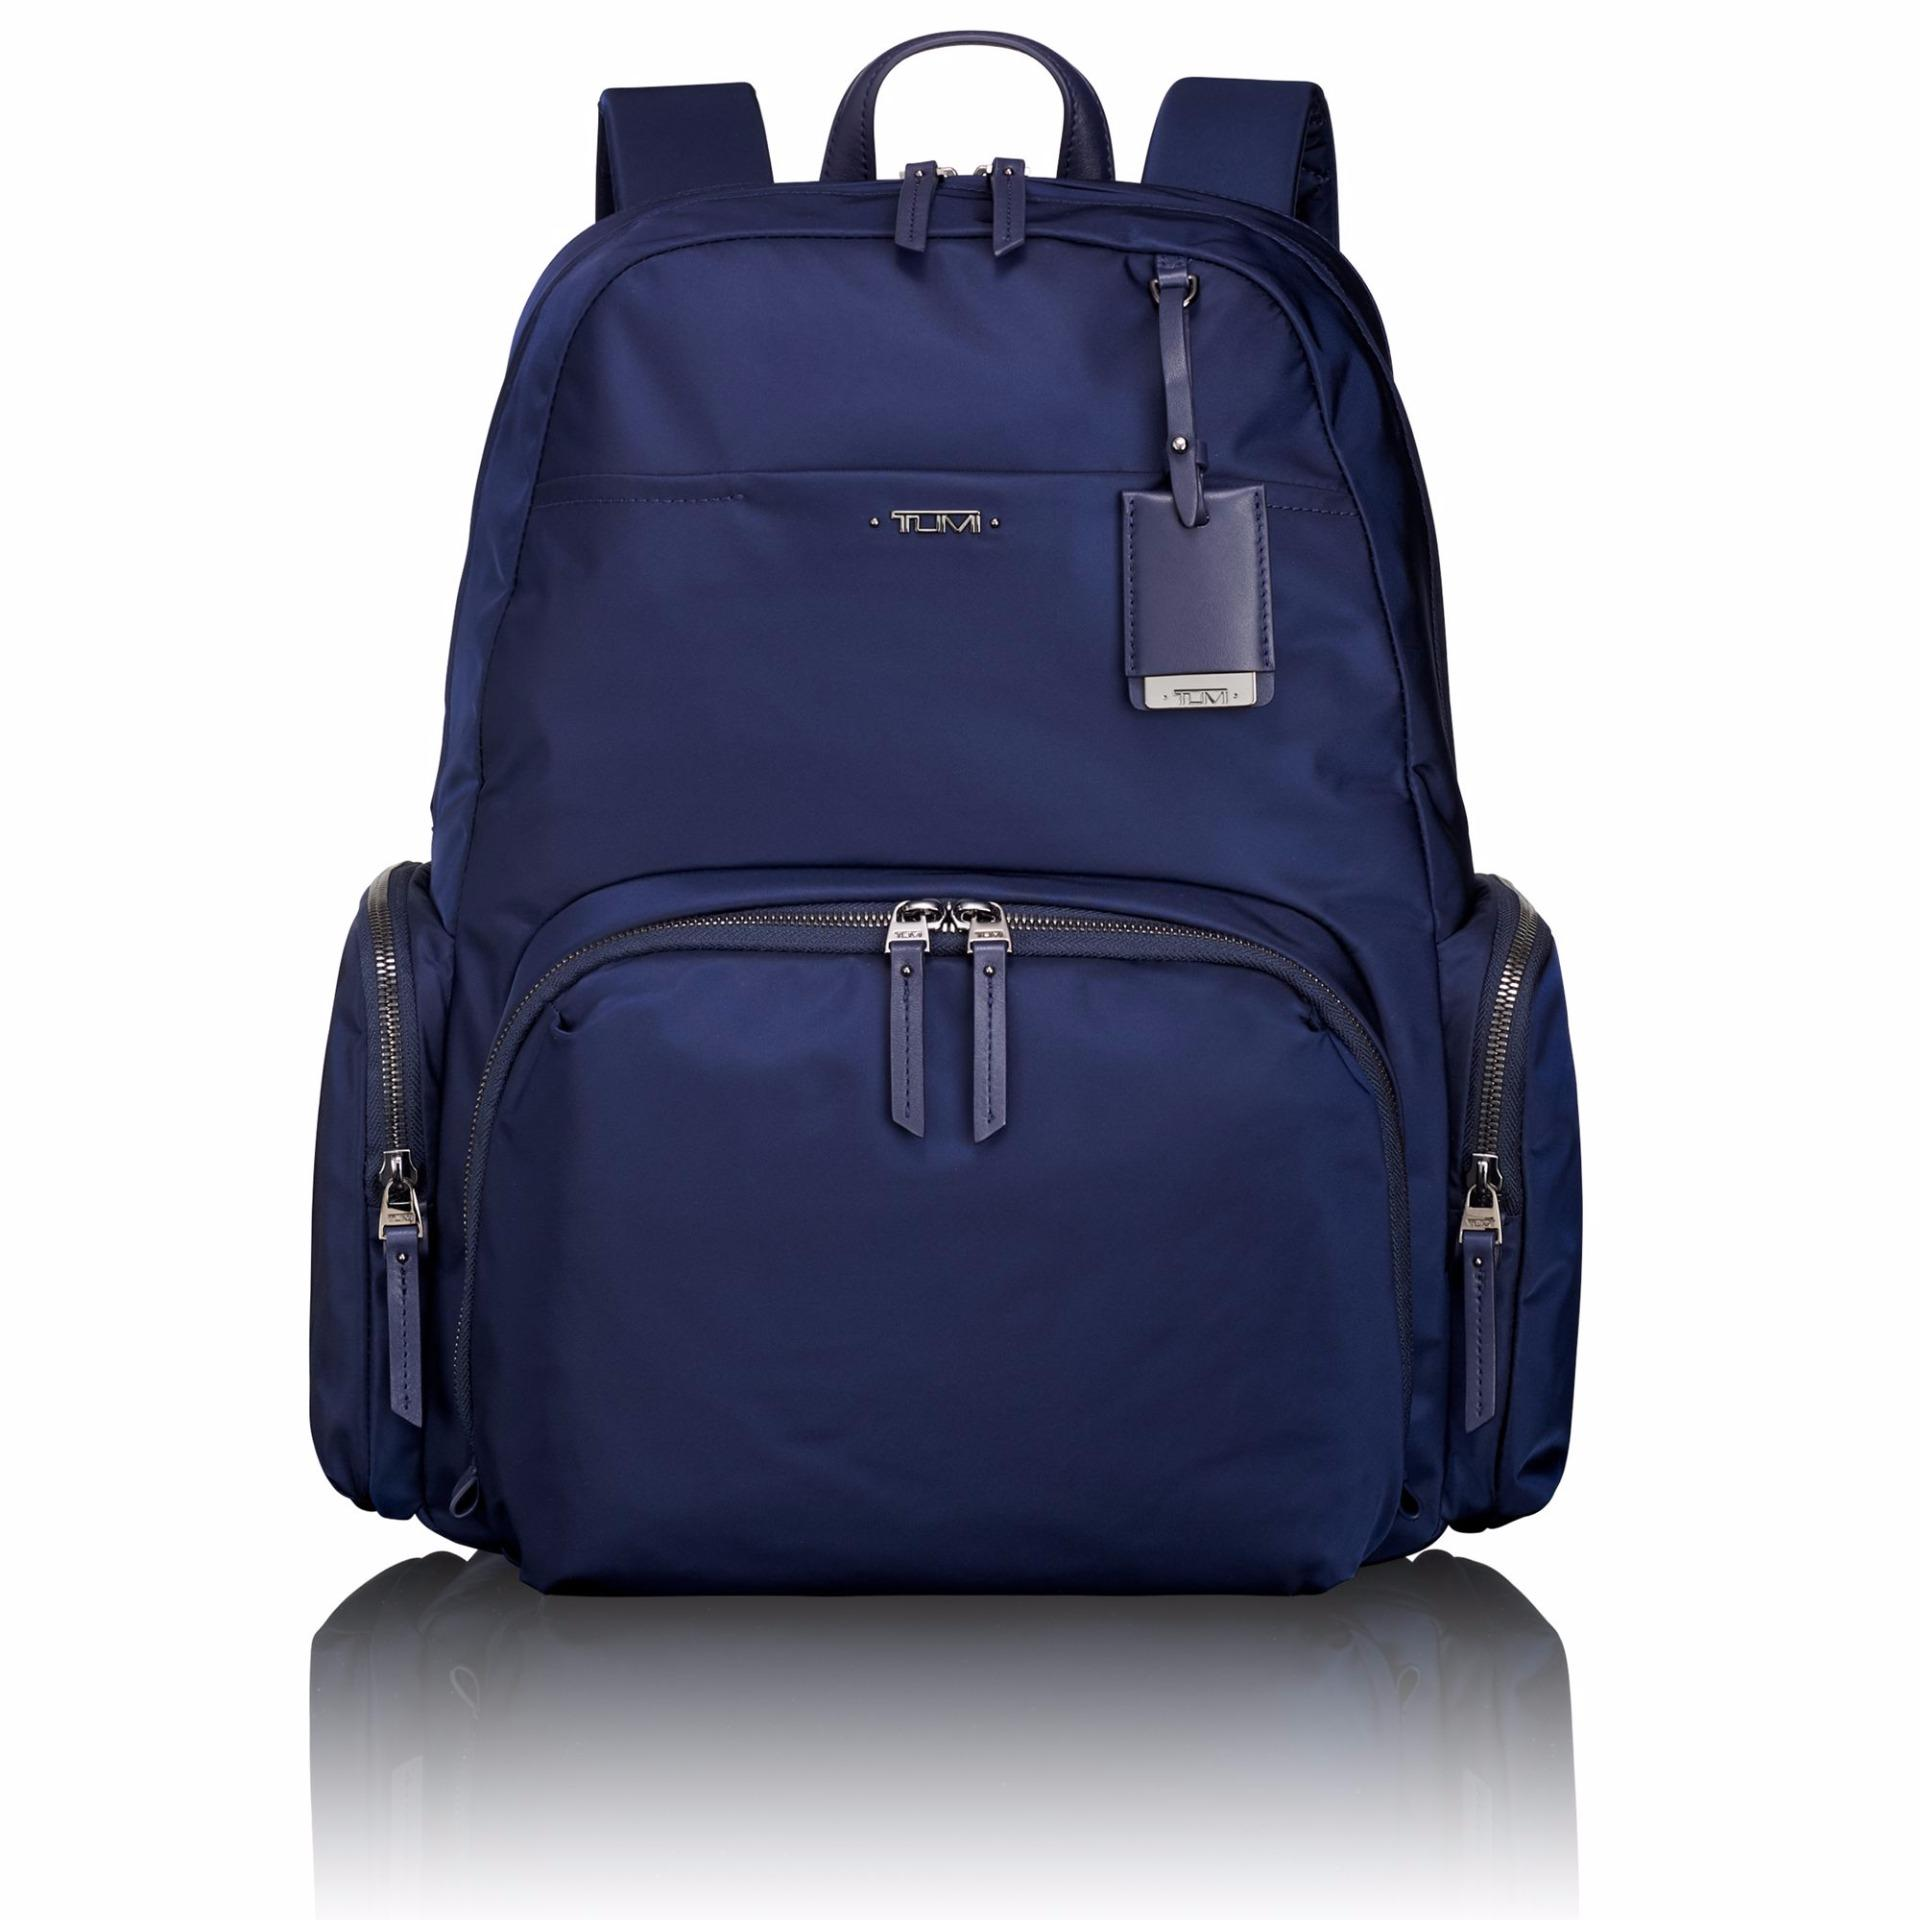 Diskon Tumi Voyageur Calais Backpack Branded